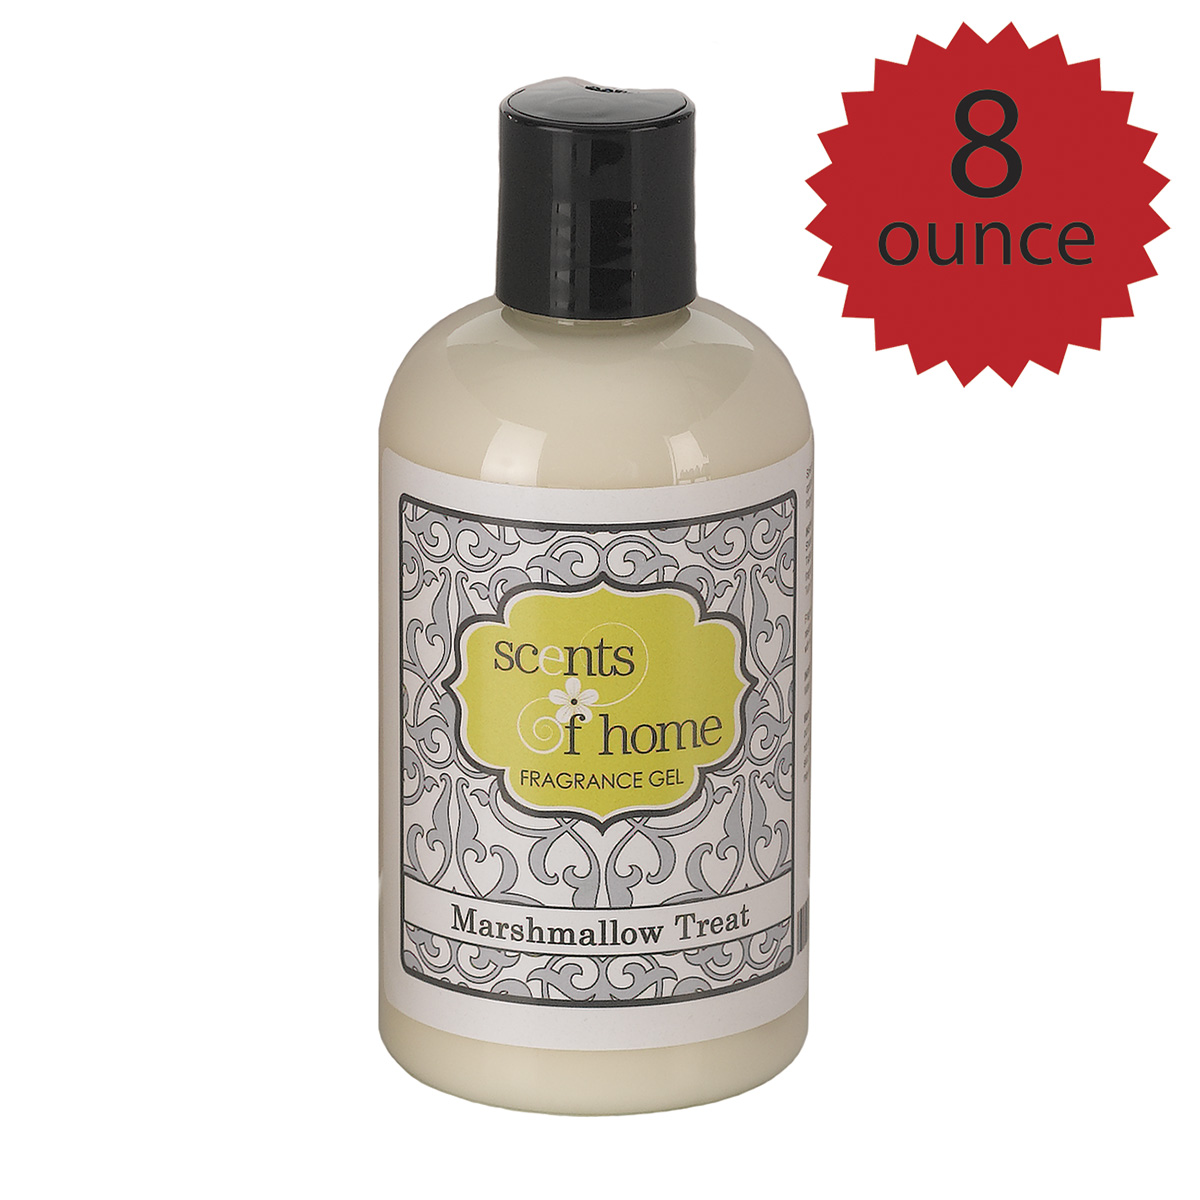 8 oz. Fragrance Gel - Marshmallow Treat